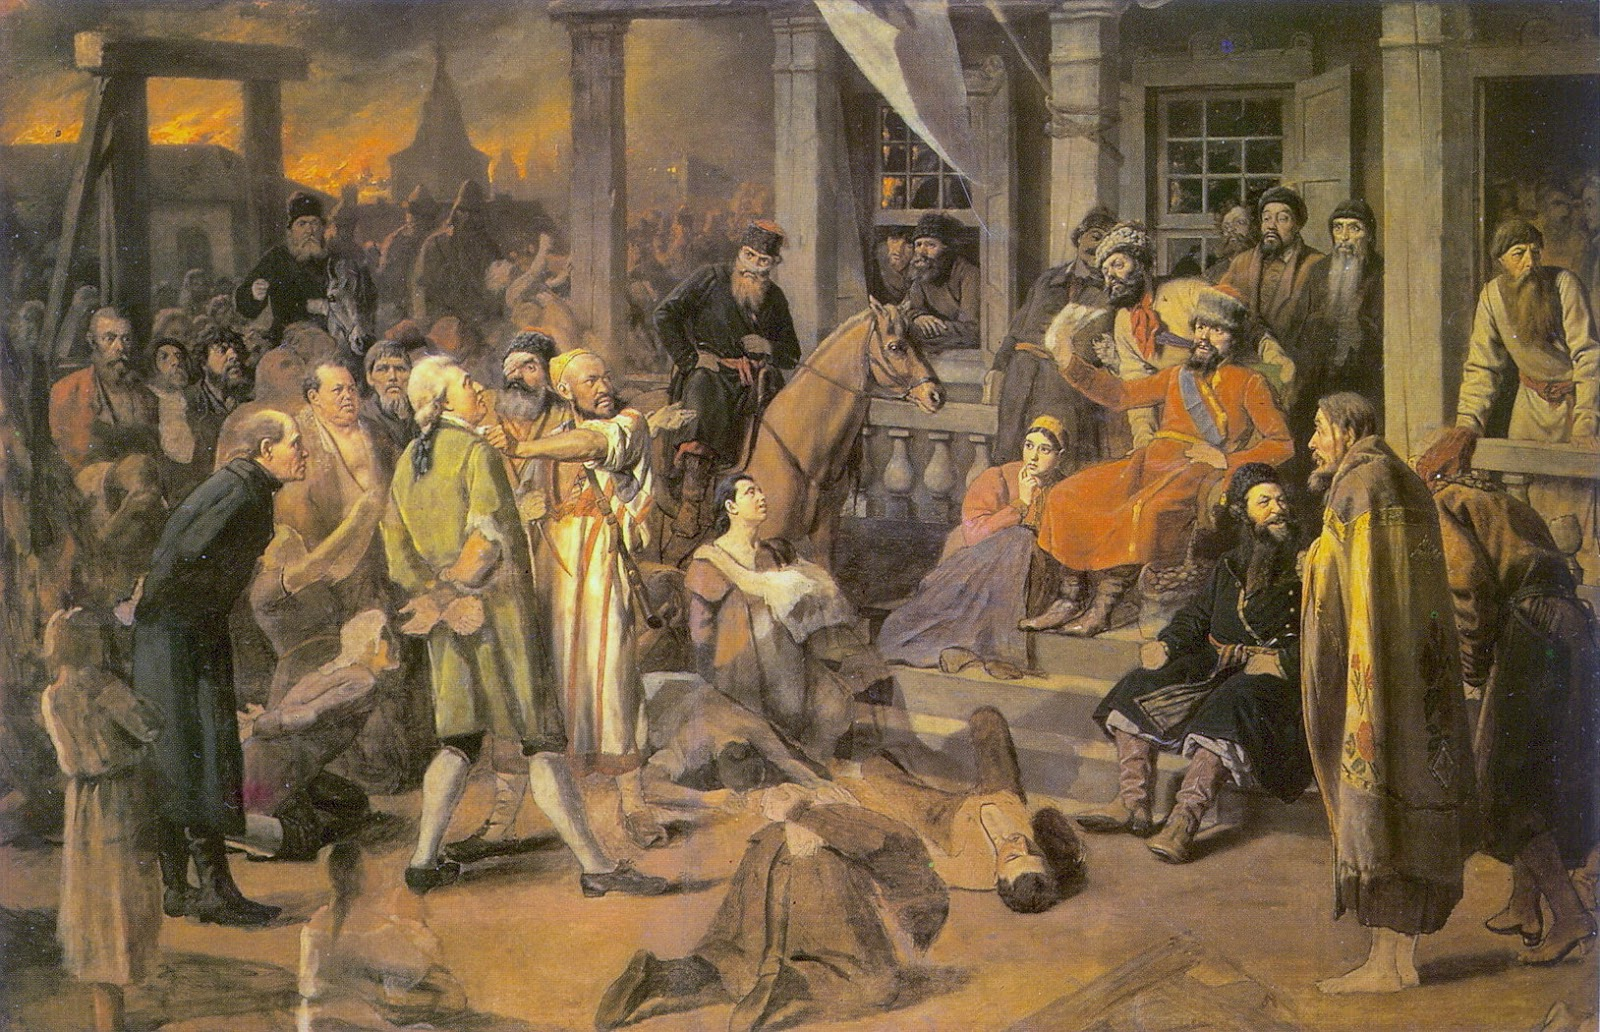 The image of Pugachev in the story The Captains Daughter by Alexander Pushkin